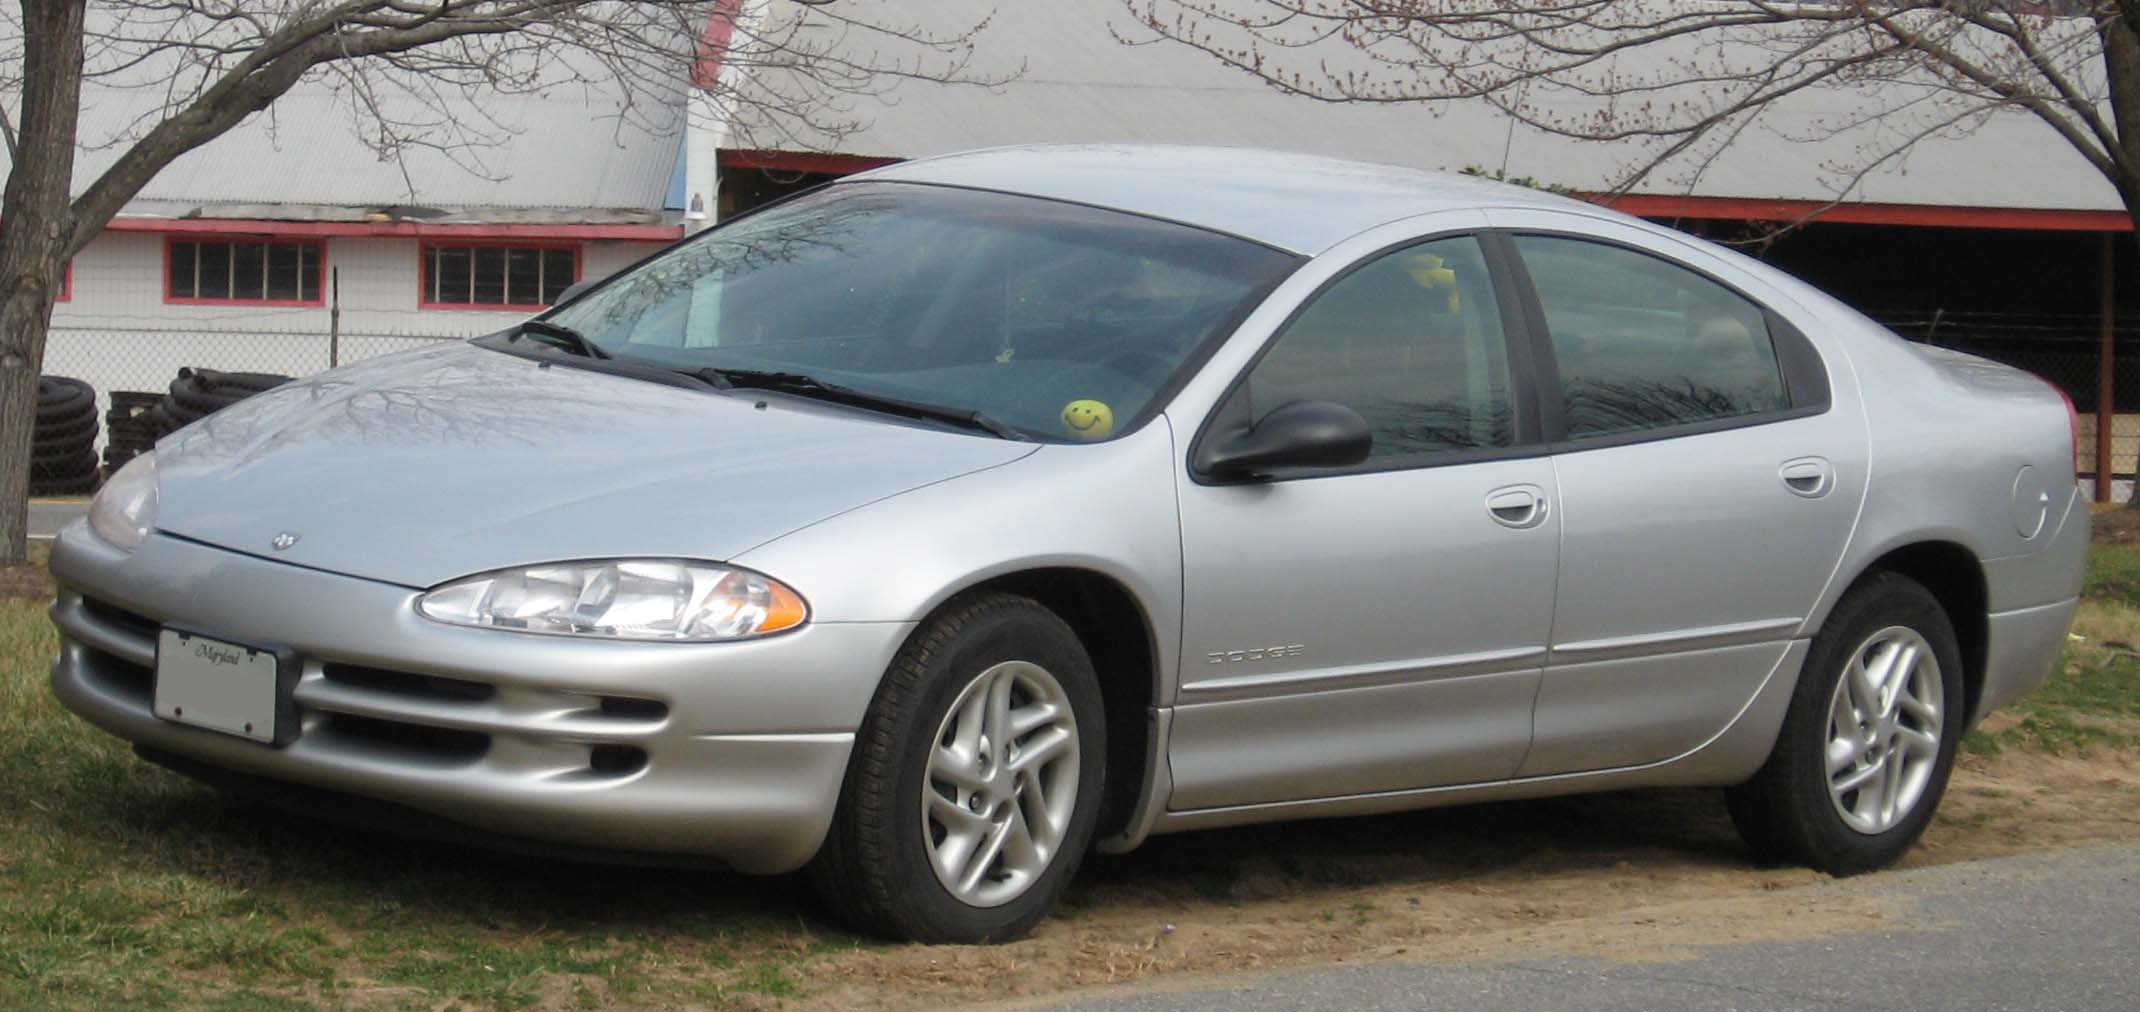 1997 Dodge Intrepid #10